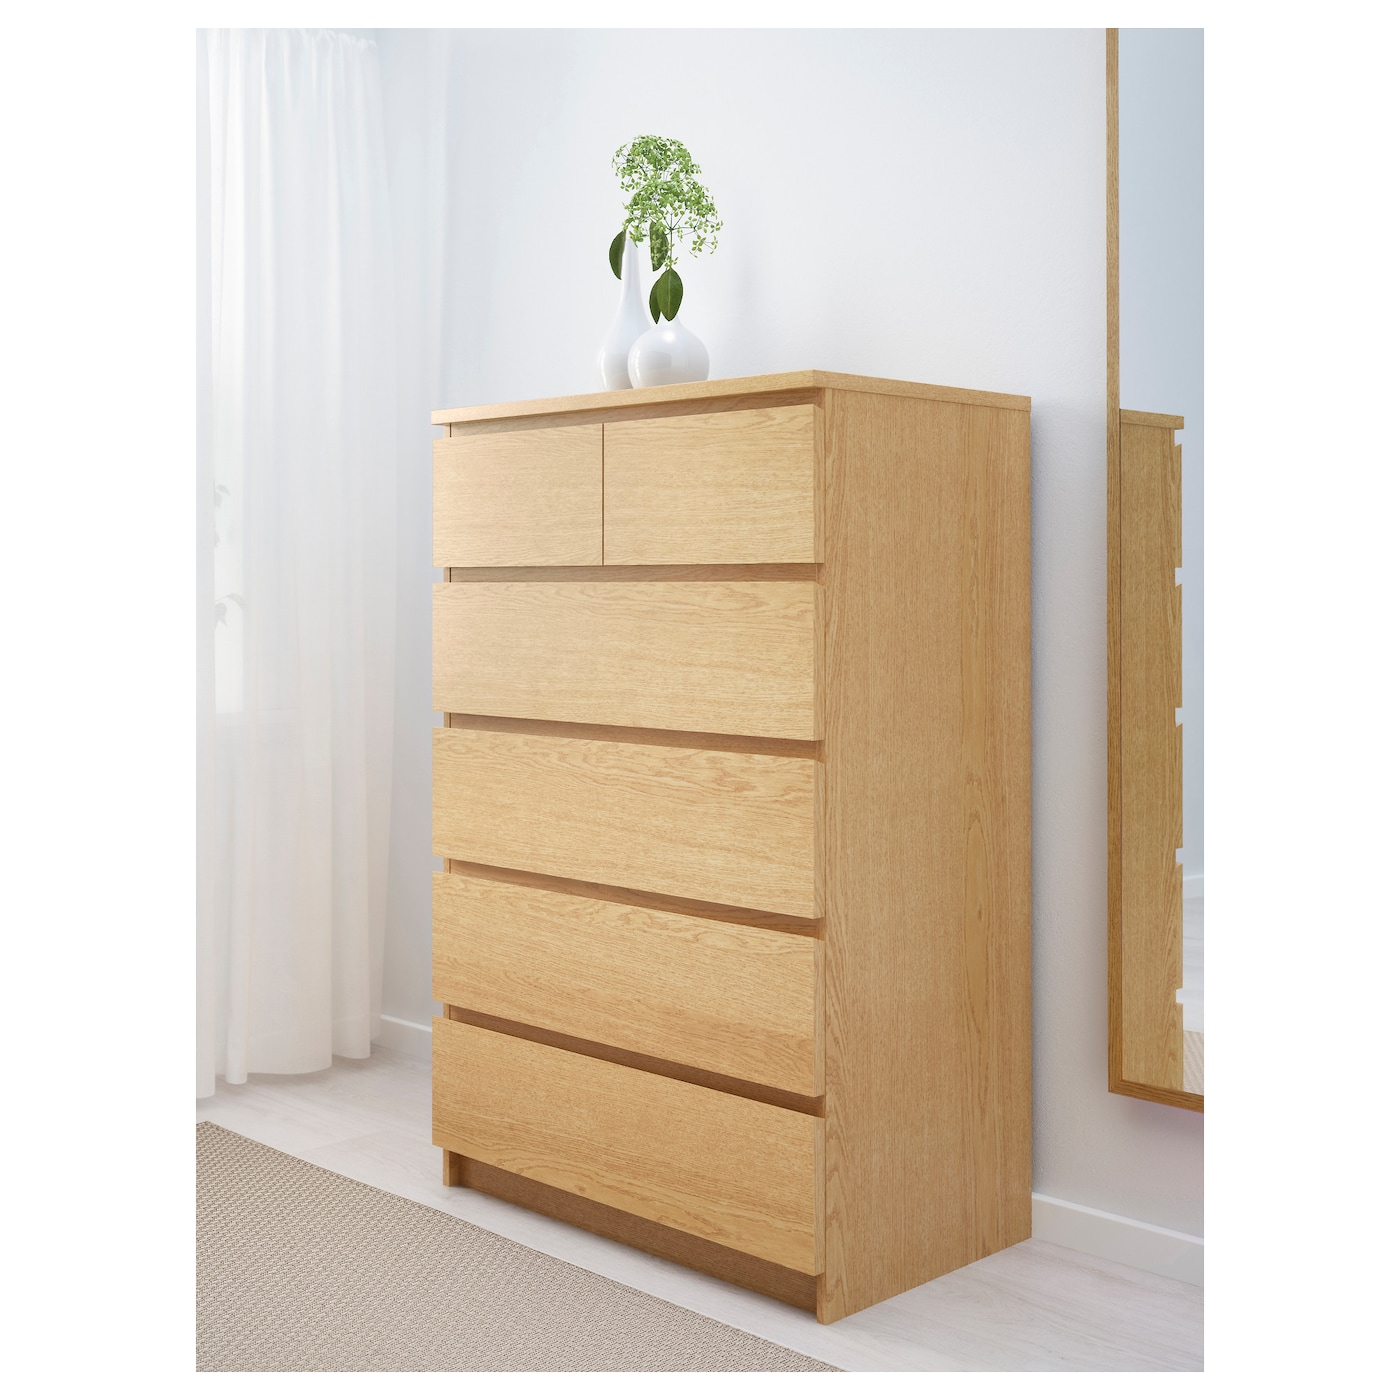 Malm Chest Of 6 Drawers Oak Veneer 80x123 Cm Ikea